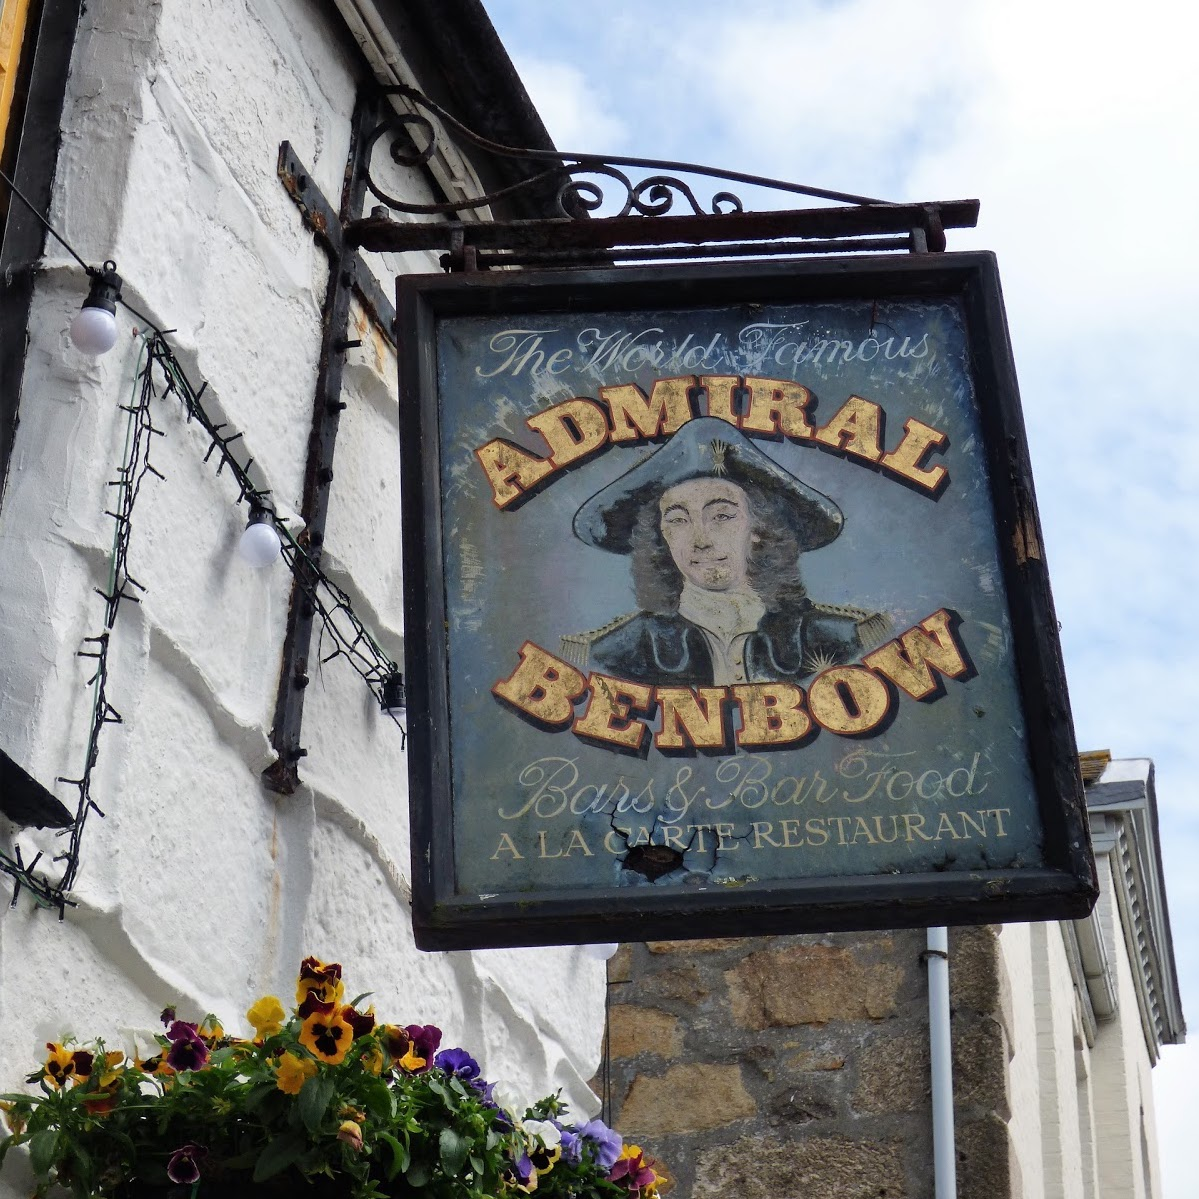 Admiral Benbow, sign